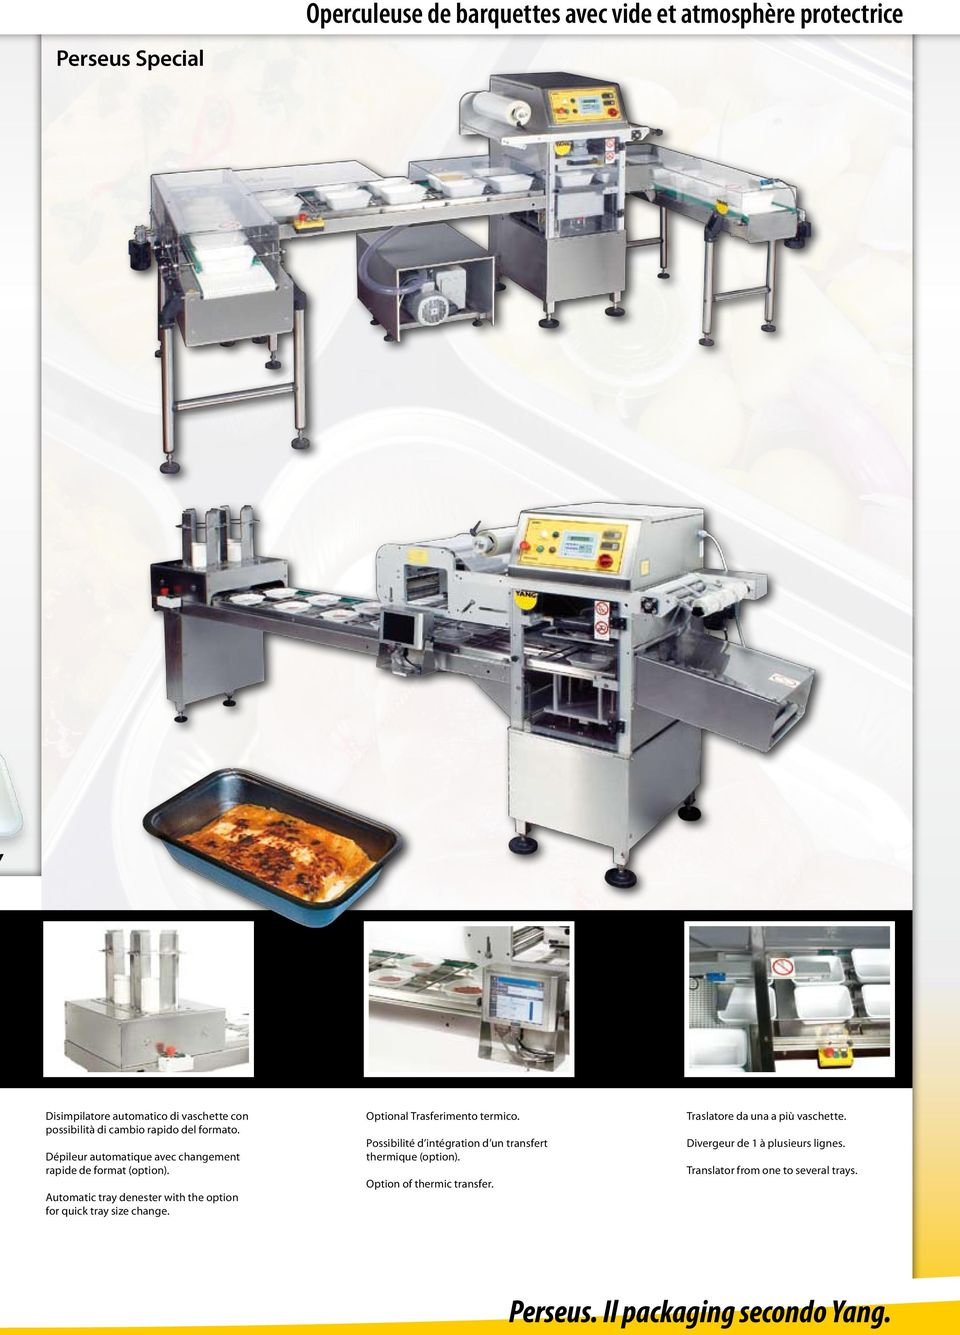 Automatic tray denester with the option for quick tray size change. Optional Trasferimento termico.